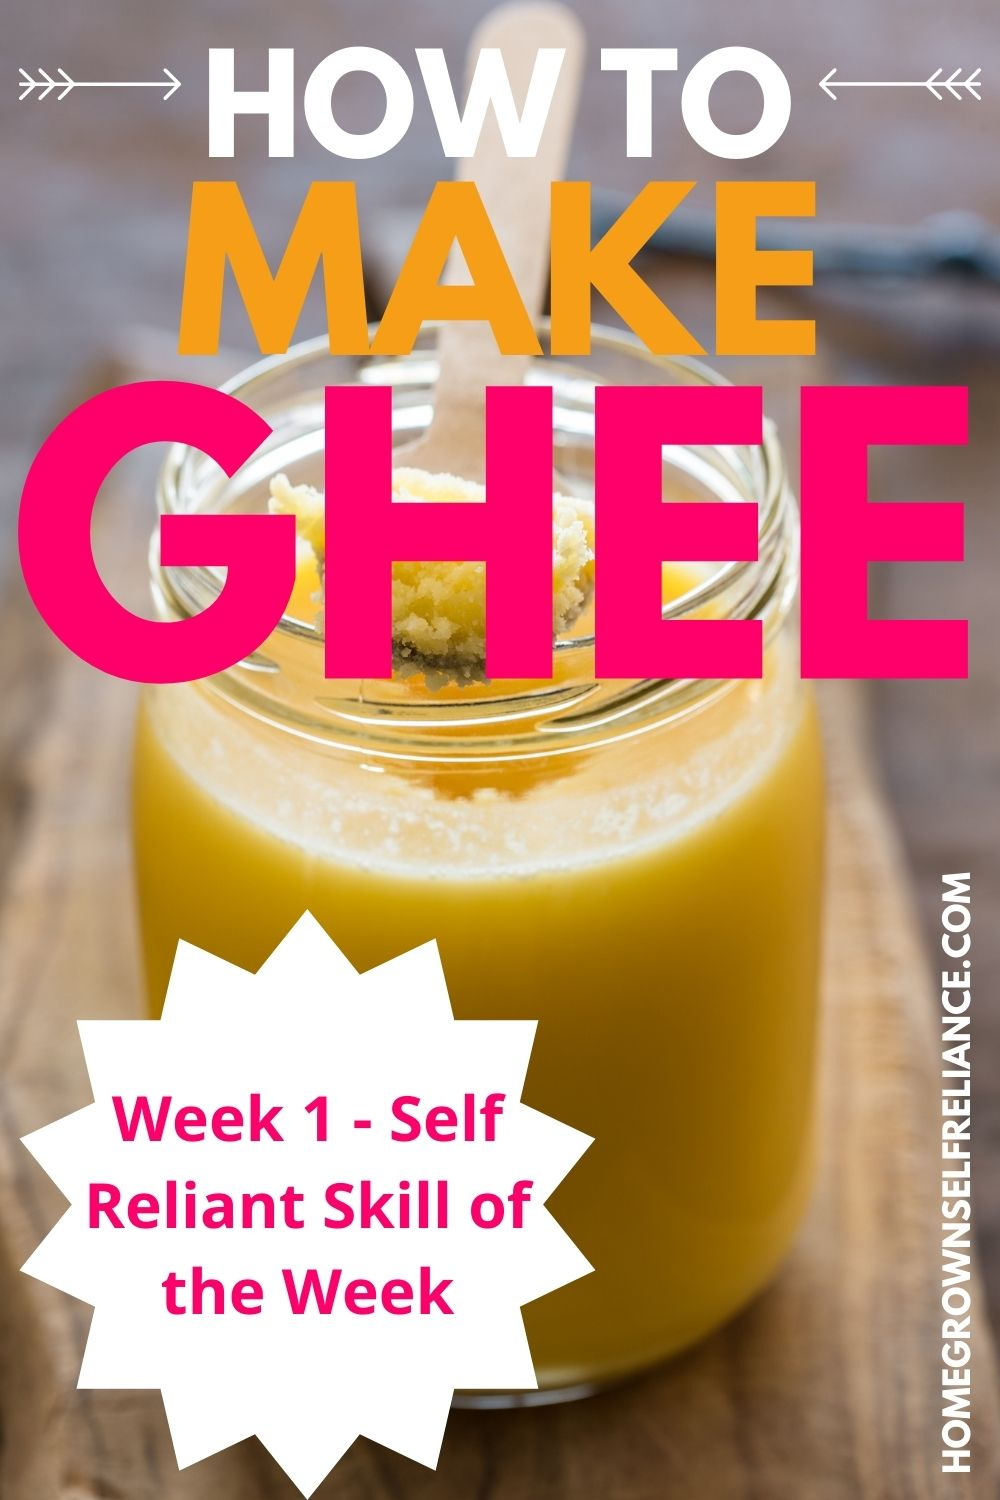 how to make ghee, How To Make Ghee